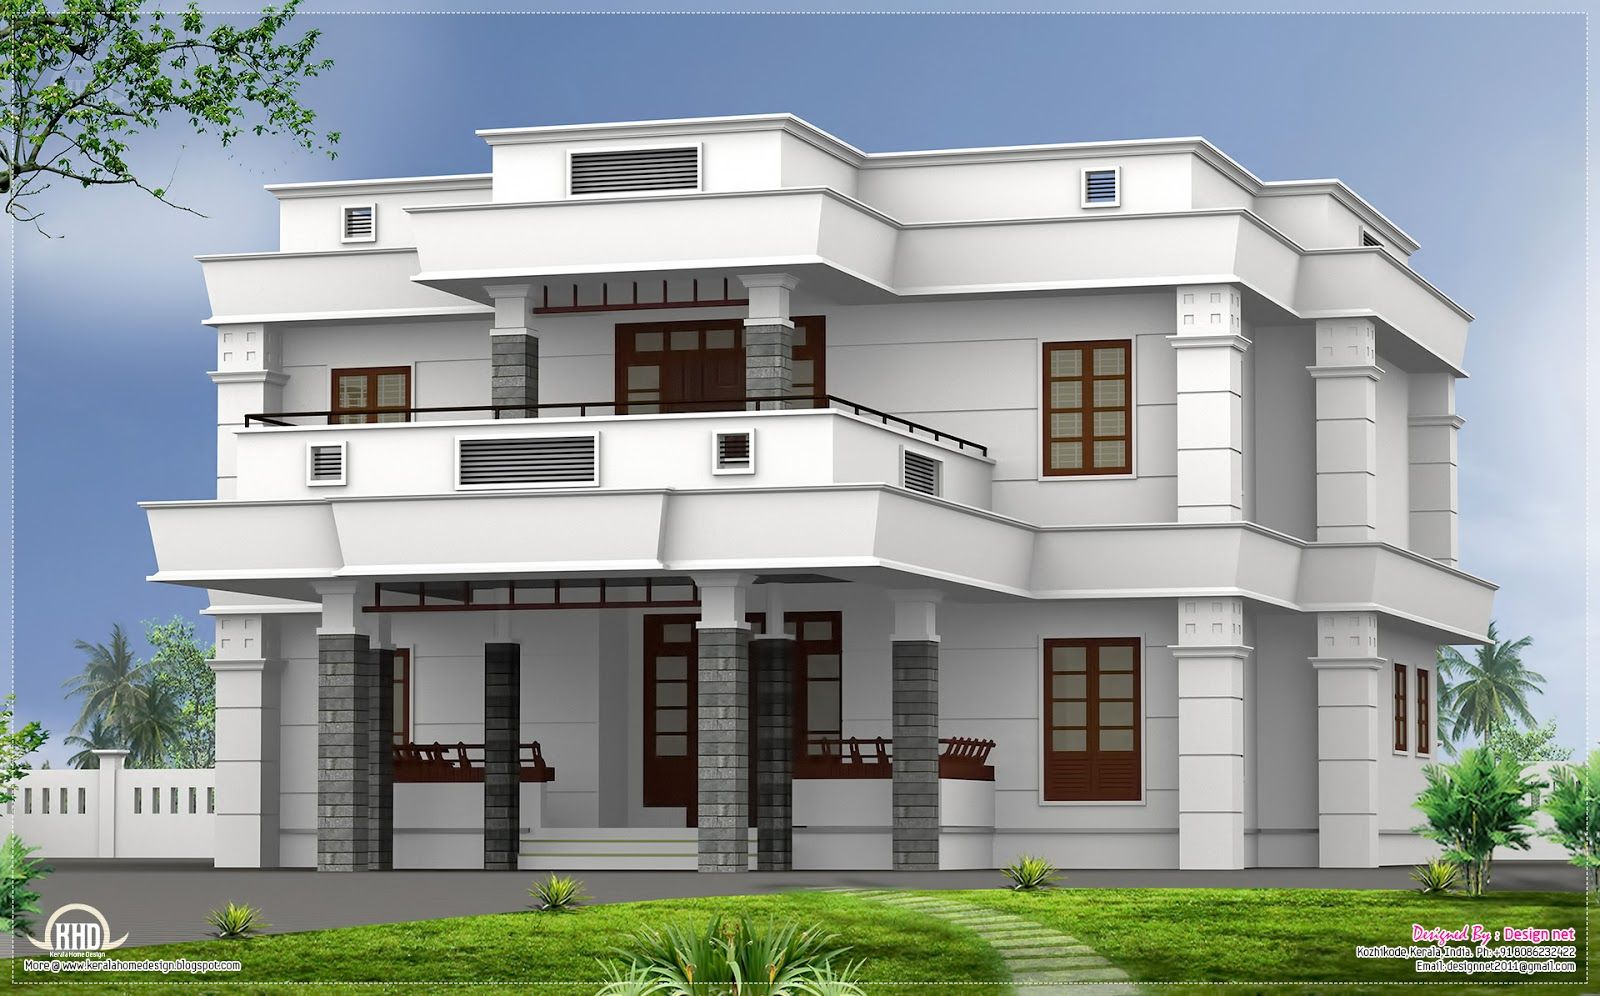 Flat roof homes designs bhk modern house design kerala home and floor plans also square feet bedroom mis fachadas favoritas rh pinterest